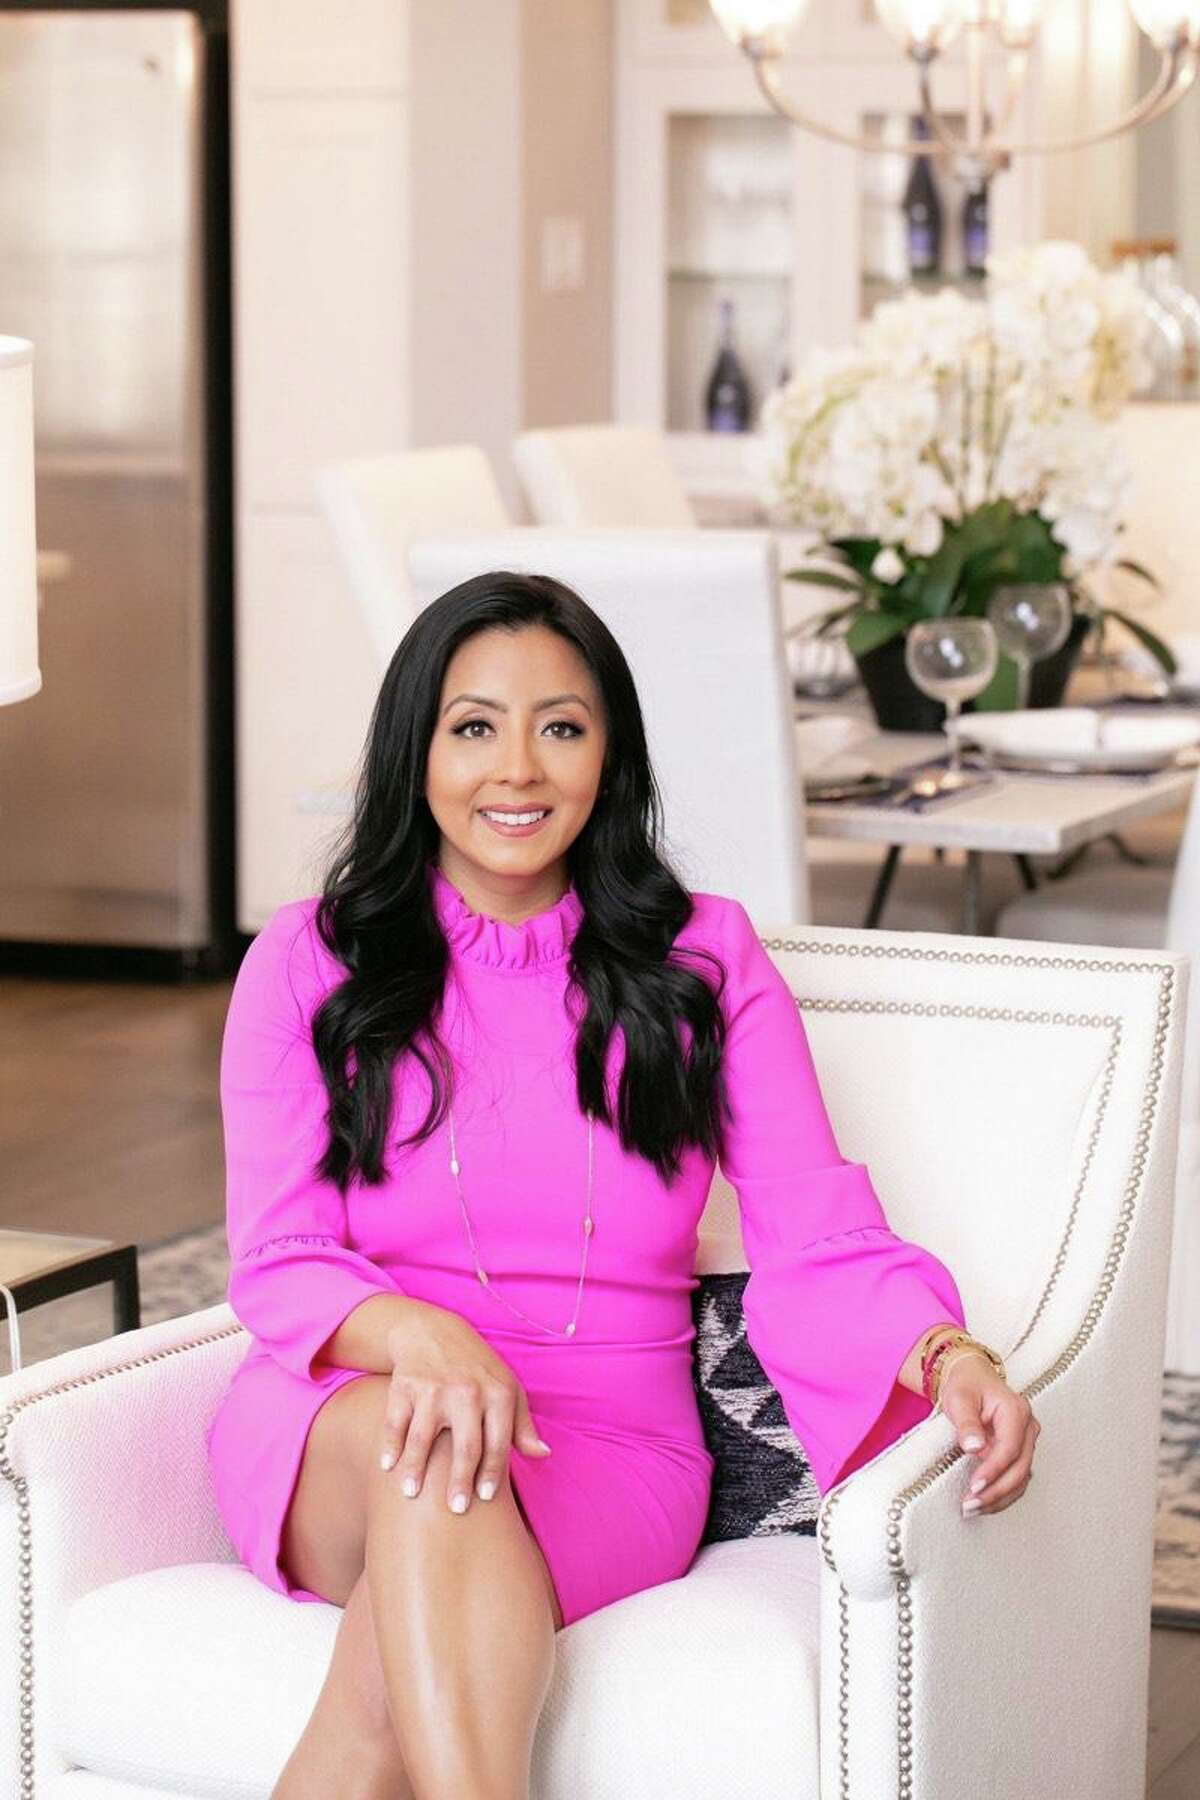 Daniela Sumbera of The Sumbera Team at Keller Williams and a member of the board of directors for Houston Area Realtors said the Spring, Tomball, and Magnolia market has never been so fierce.